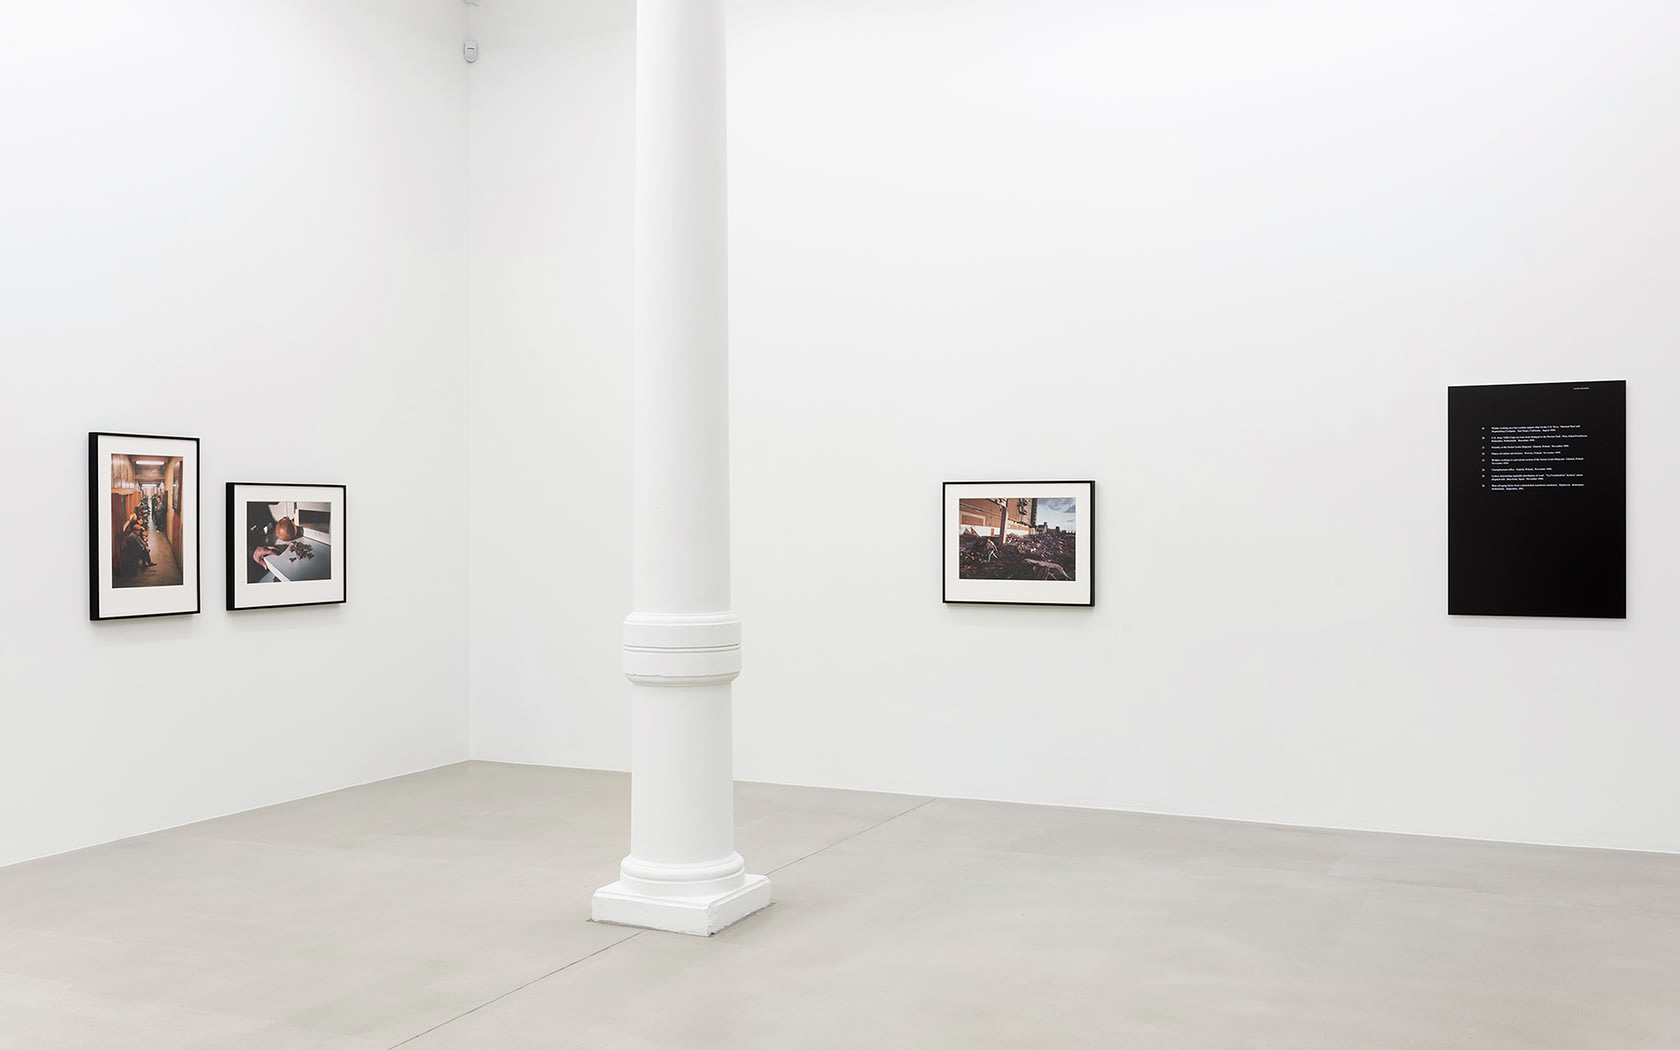 Gallery view of four photographs mounted on wall, pillar in the middle.